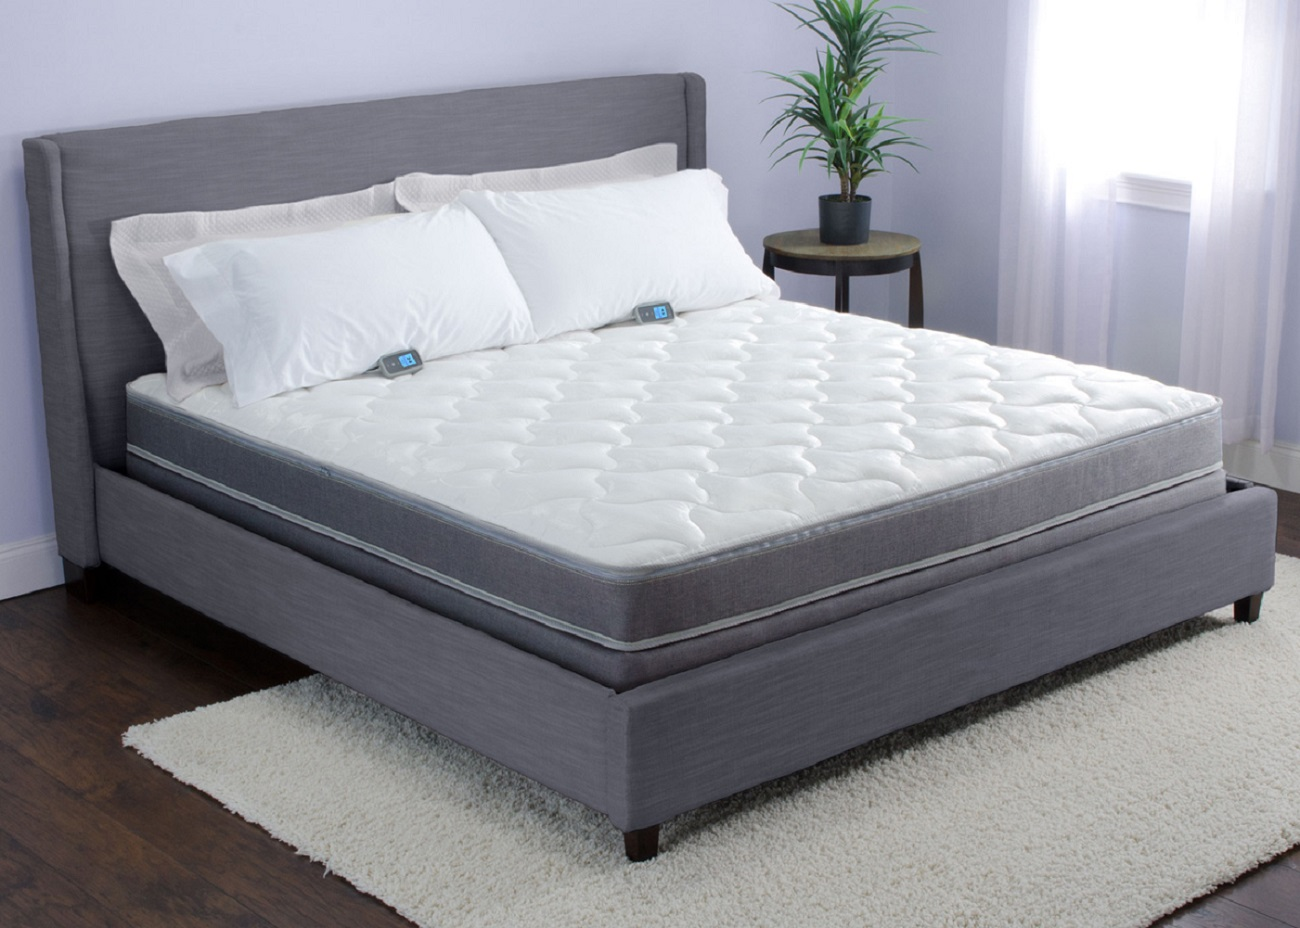 frame as fascinating americanlisted cali great top pic of breathtaking mesmerizing popular platform mattress bed sleep imgid number i sleeper twin comfort and size concept king split select couch